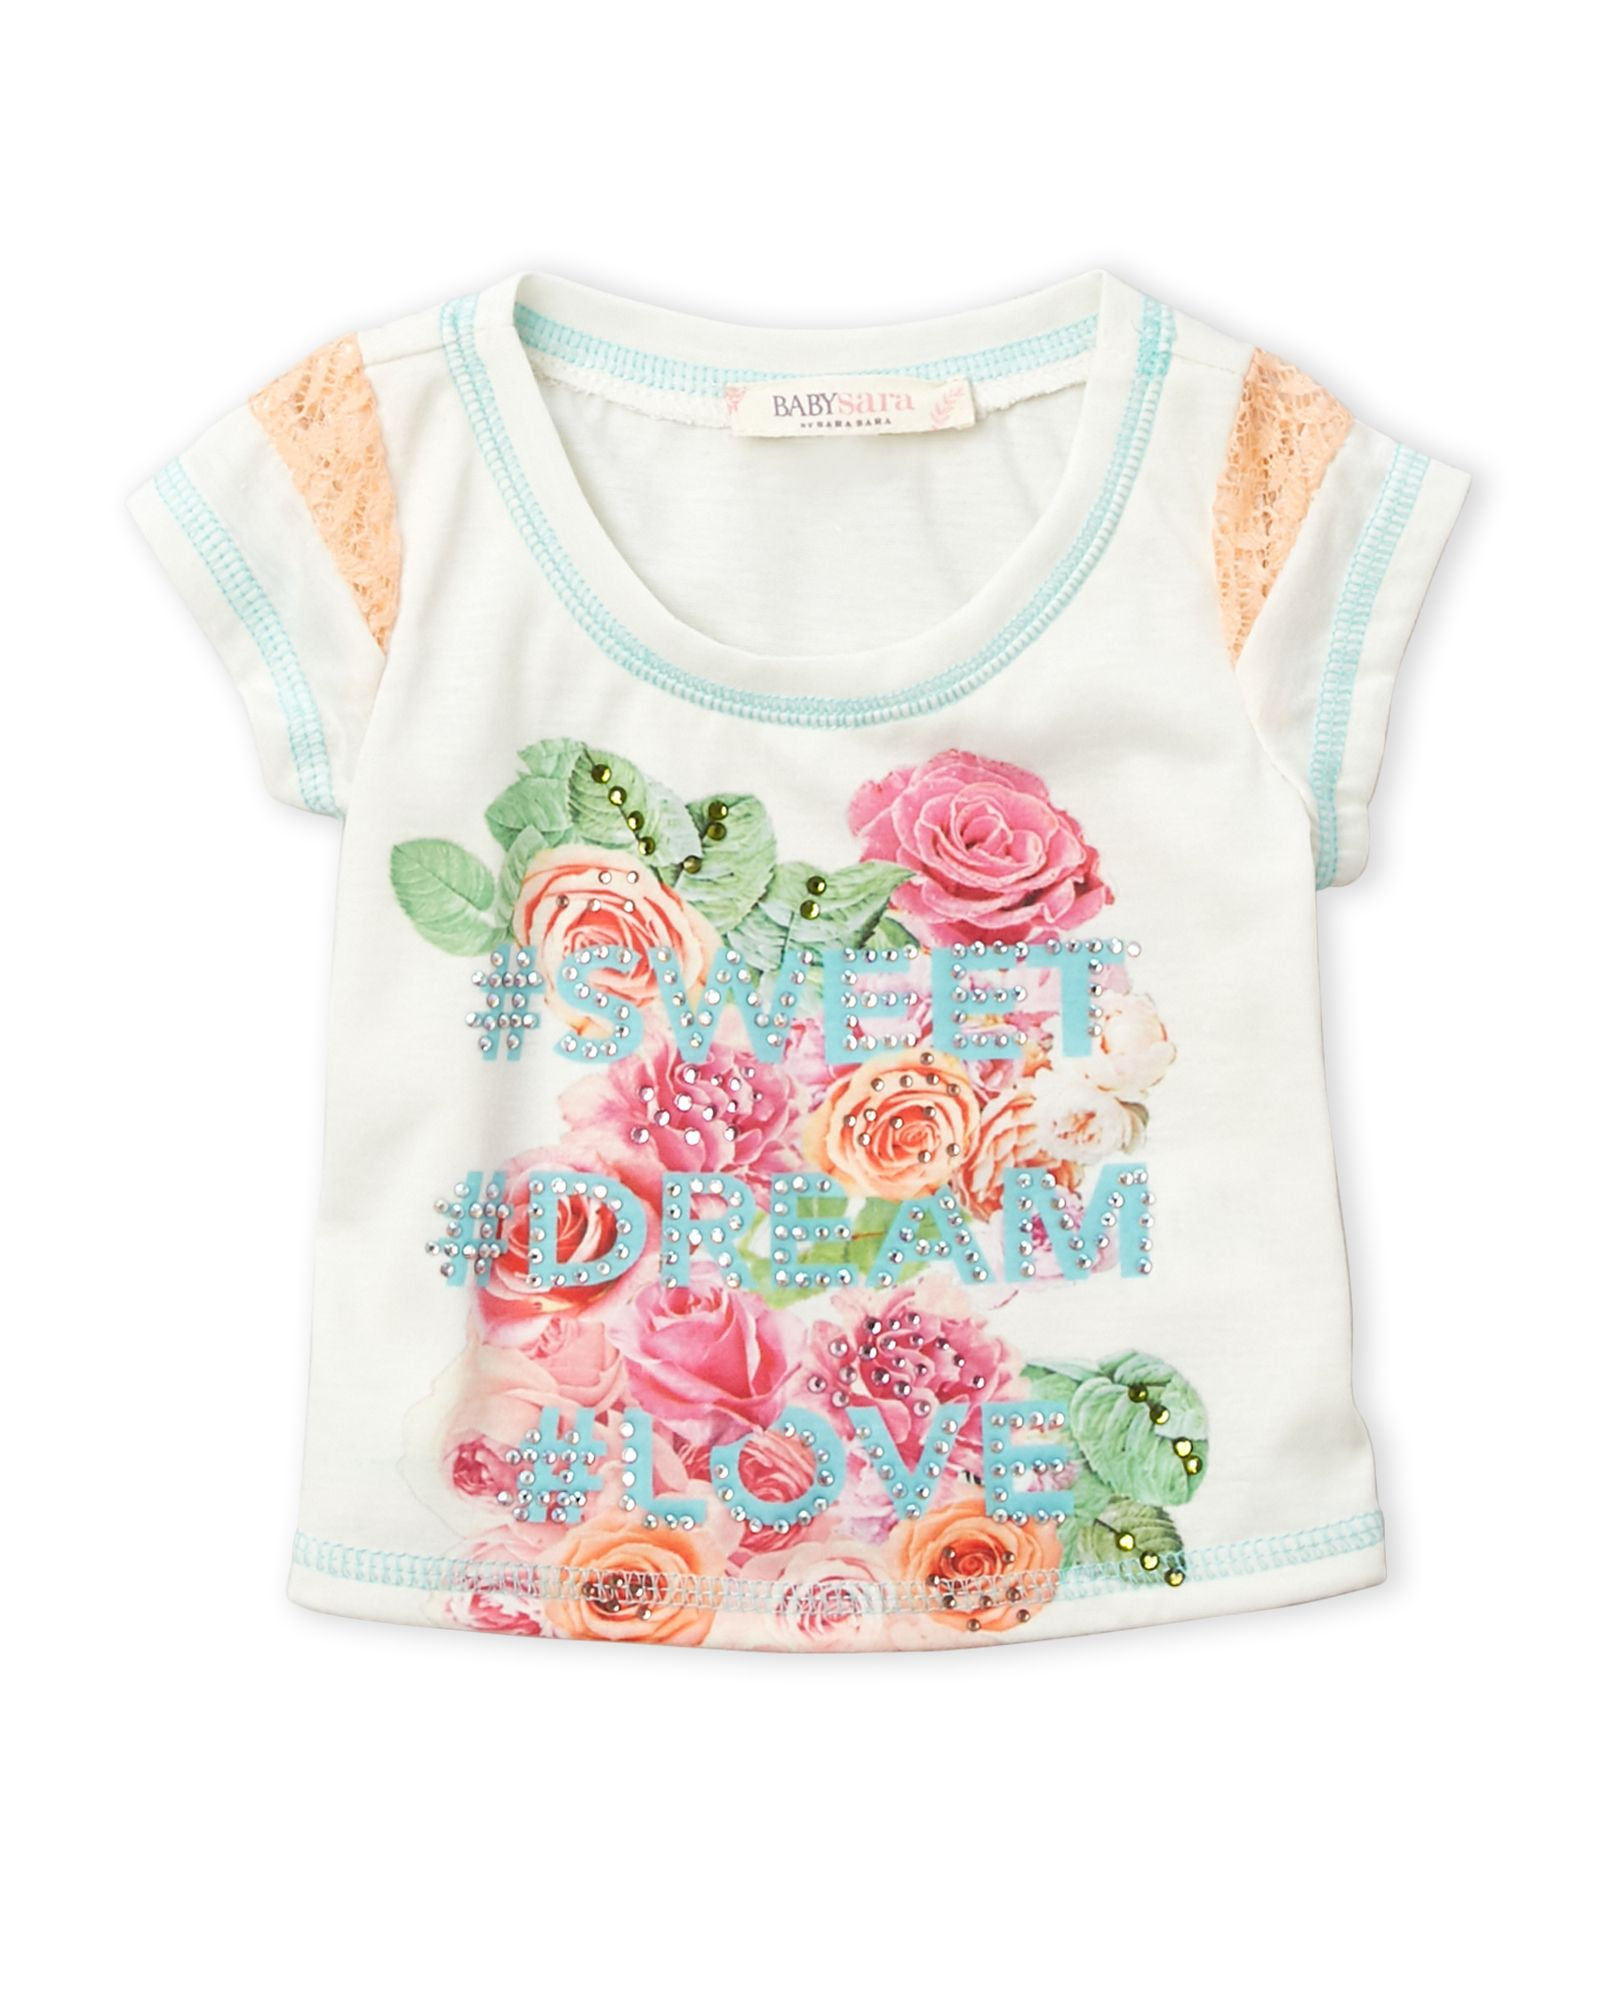 Baby Sara Infant Girls Floral Graphic Tee